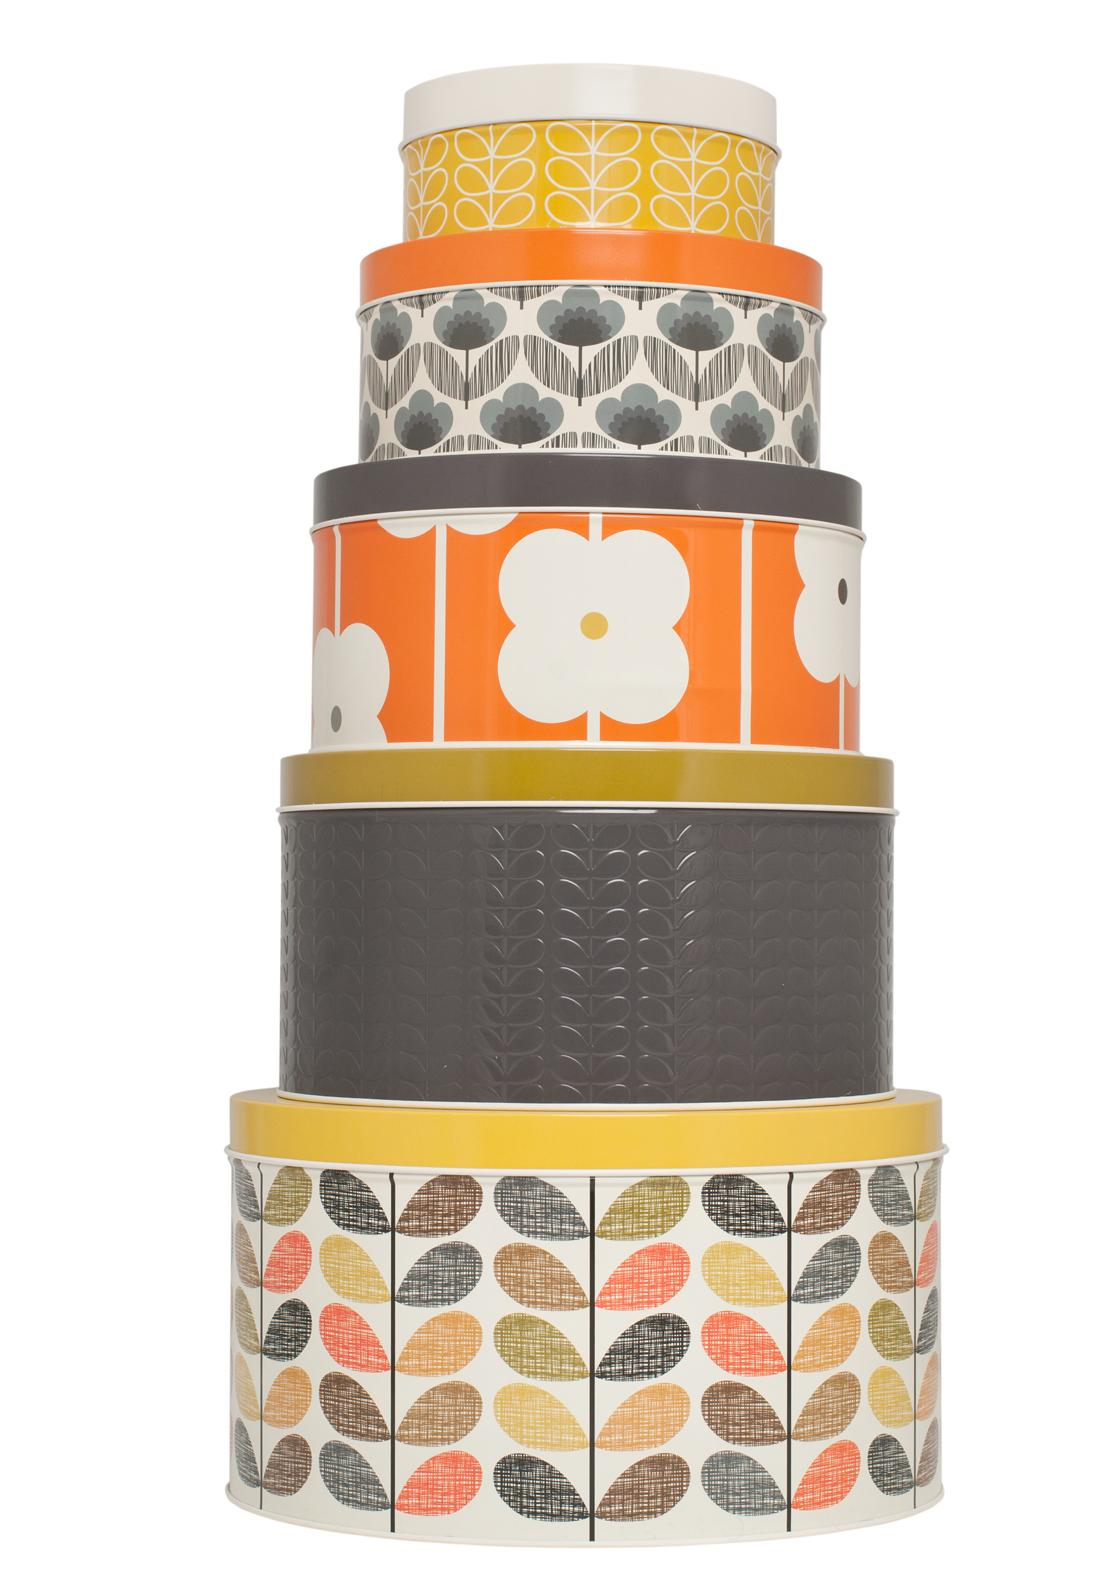 Orla Kiely Round Cake Tins, Set of 5